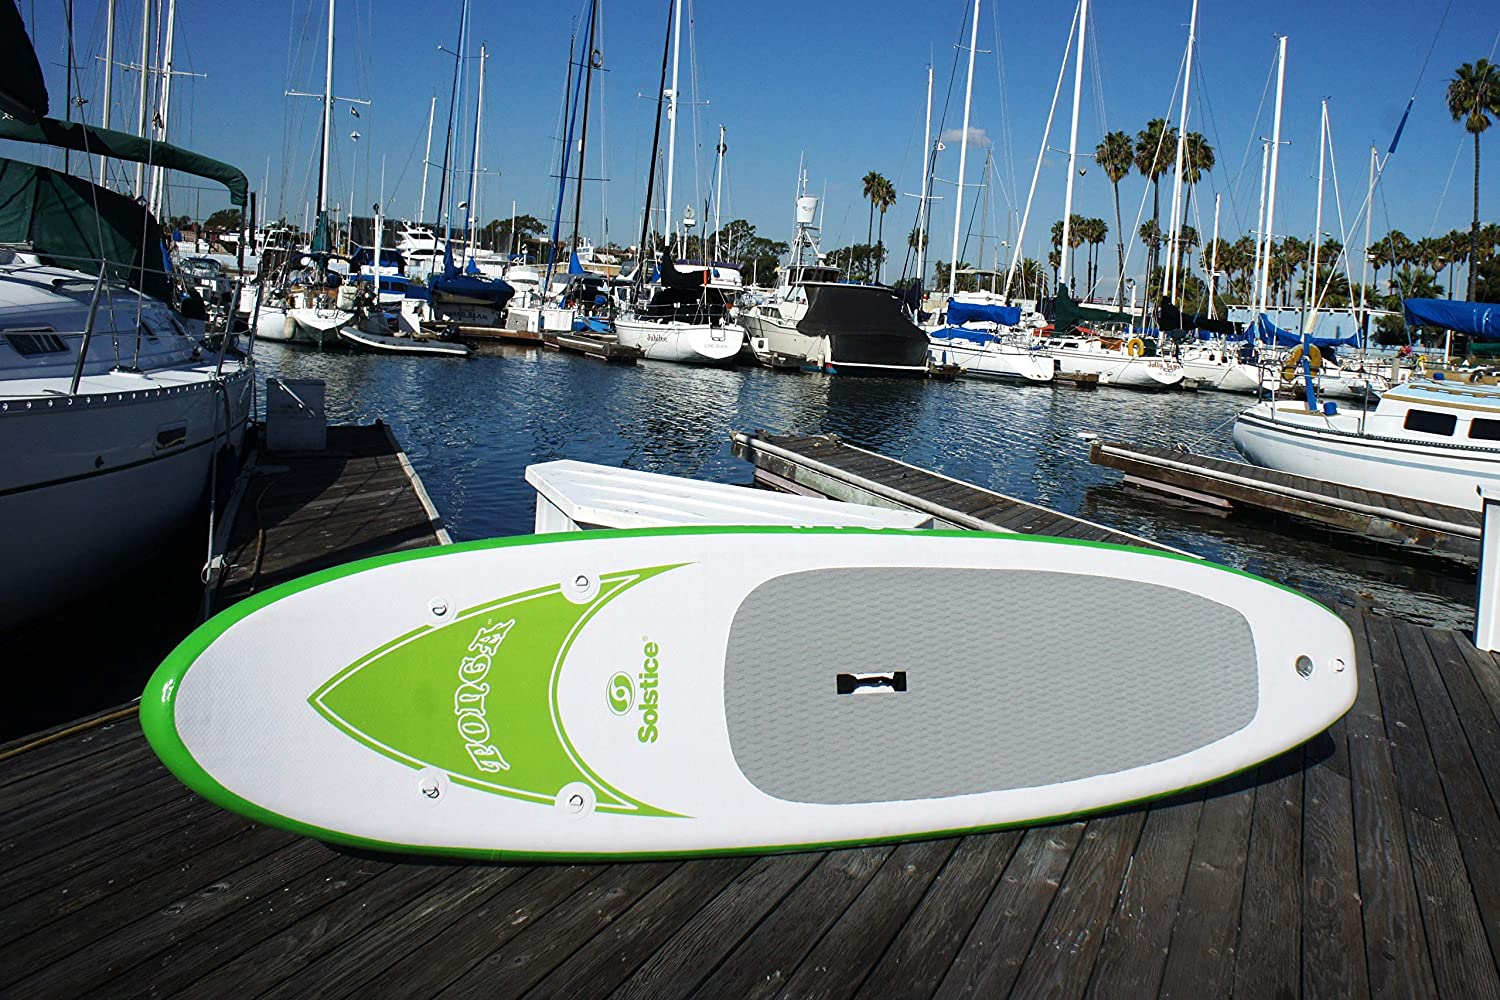 Solstice by International Leisure Products Tonga Inflatable Stand up Paddleboard, Green White, 10Feet 8Inch